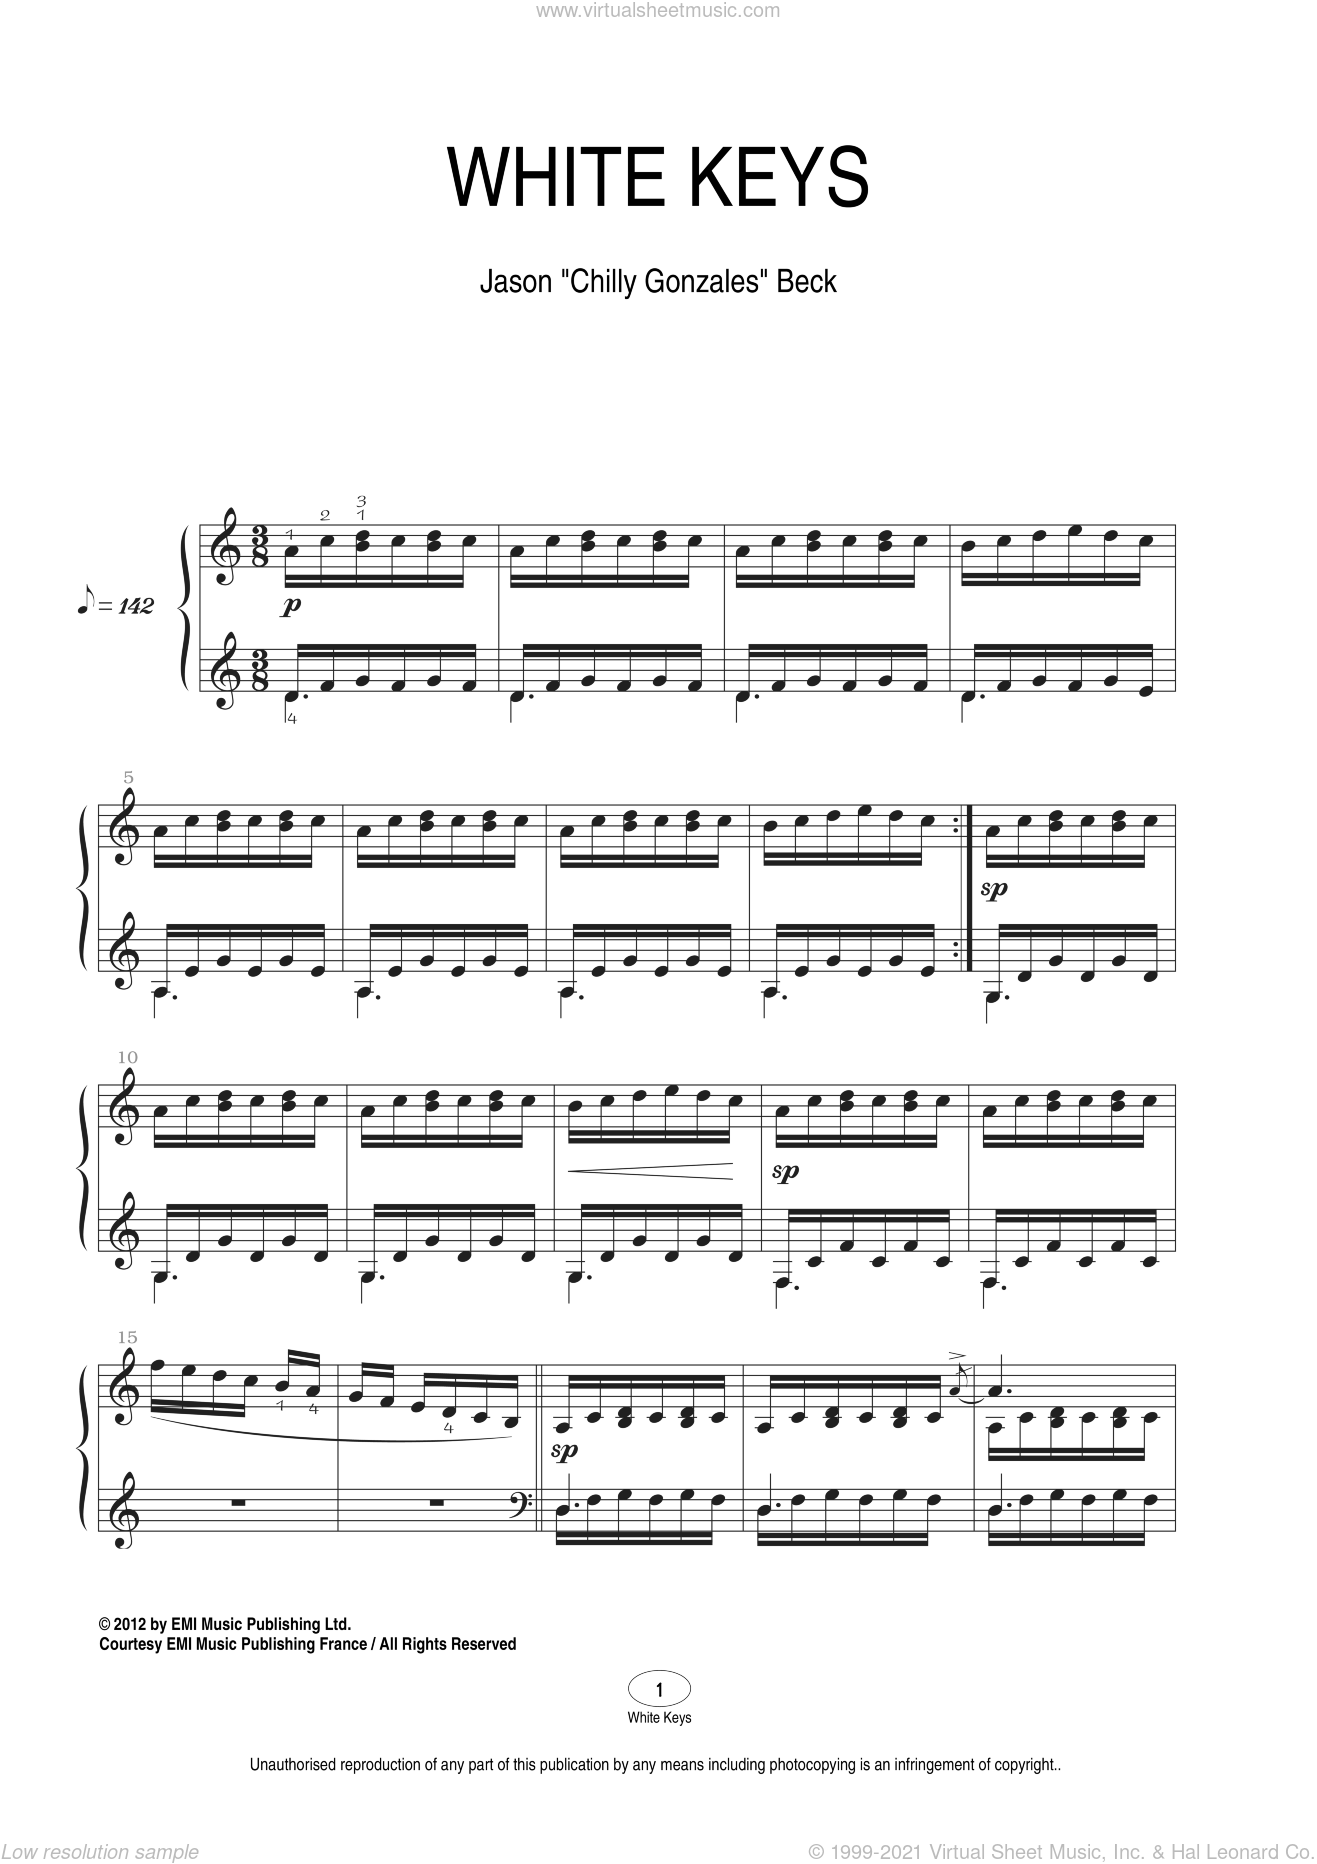 White Keys sheet music for piano solo by Chilly Gonzales, classical score, intermediate